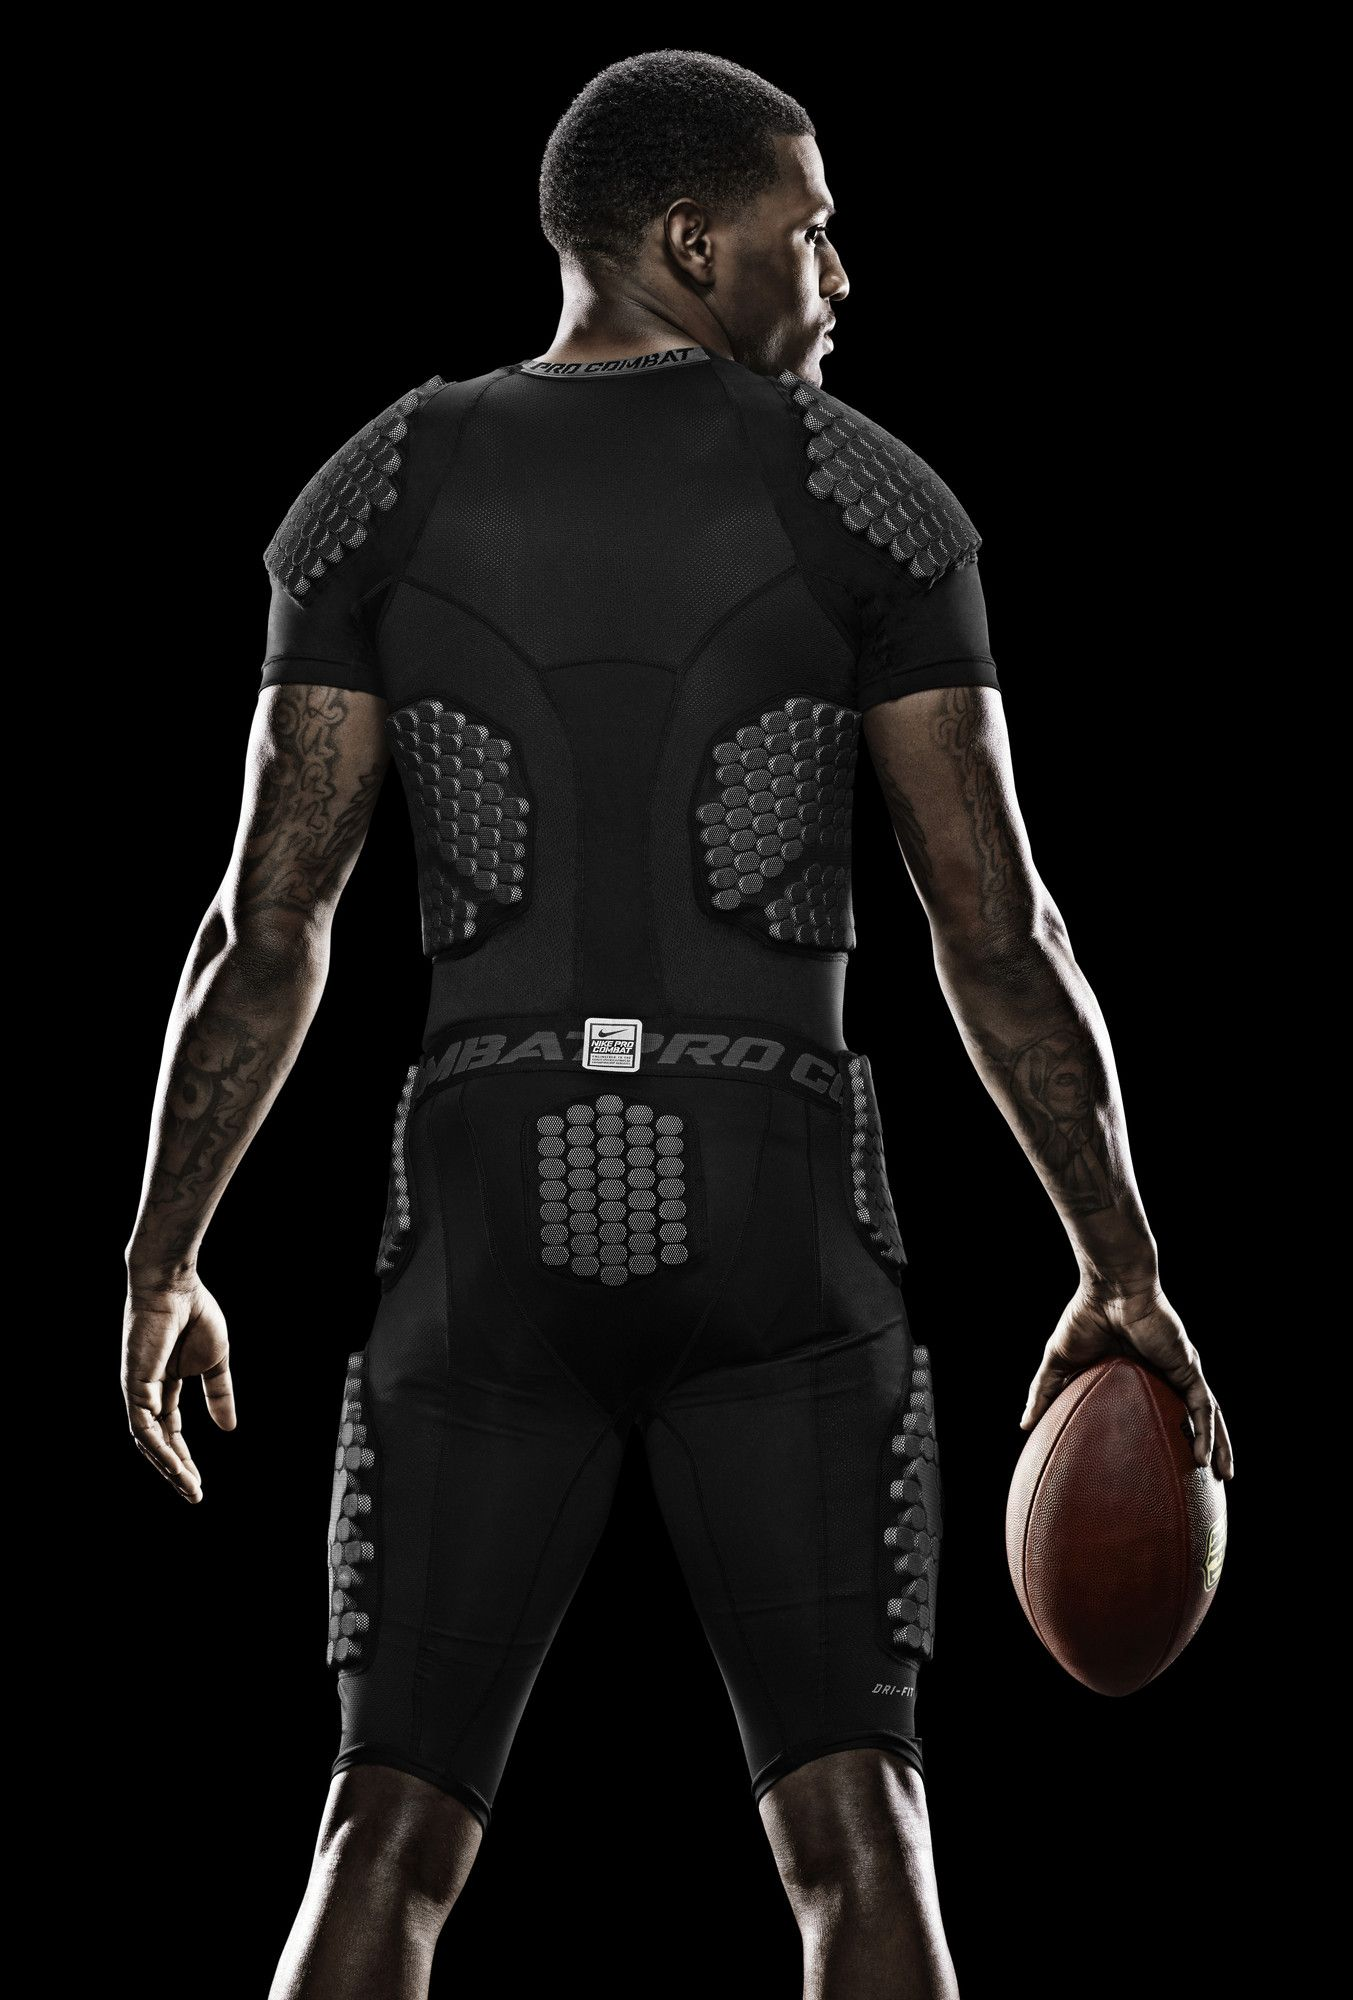 padding armor silhouette sweat wicking padded protection the nike pro combat hyperstrong. Black Bedroom Furniture Sets. Home Design Ideas